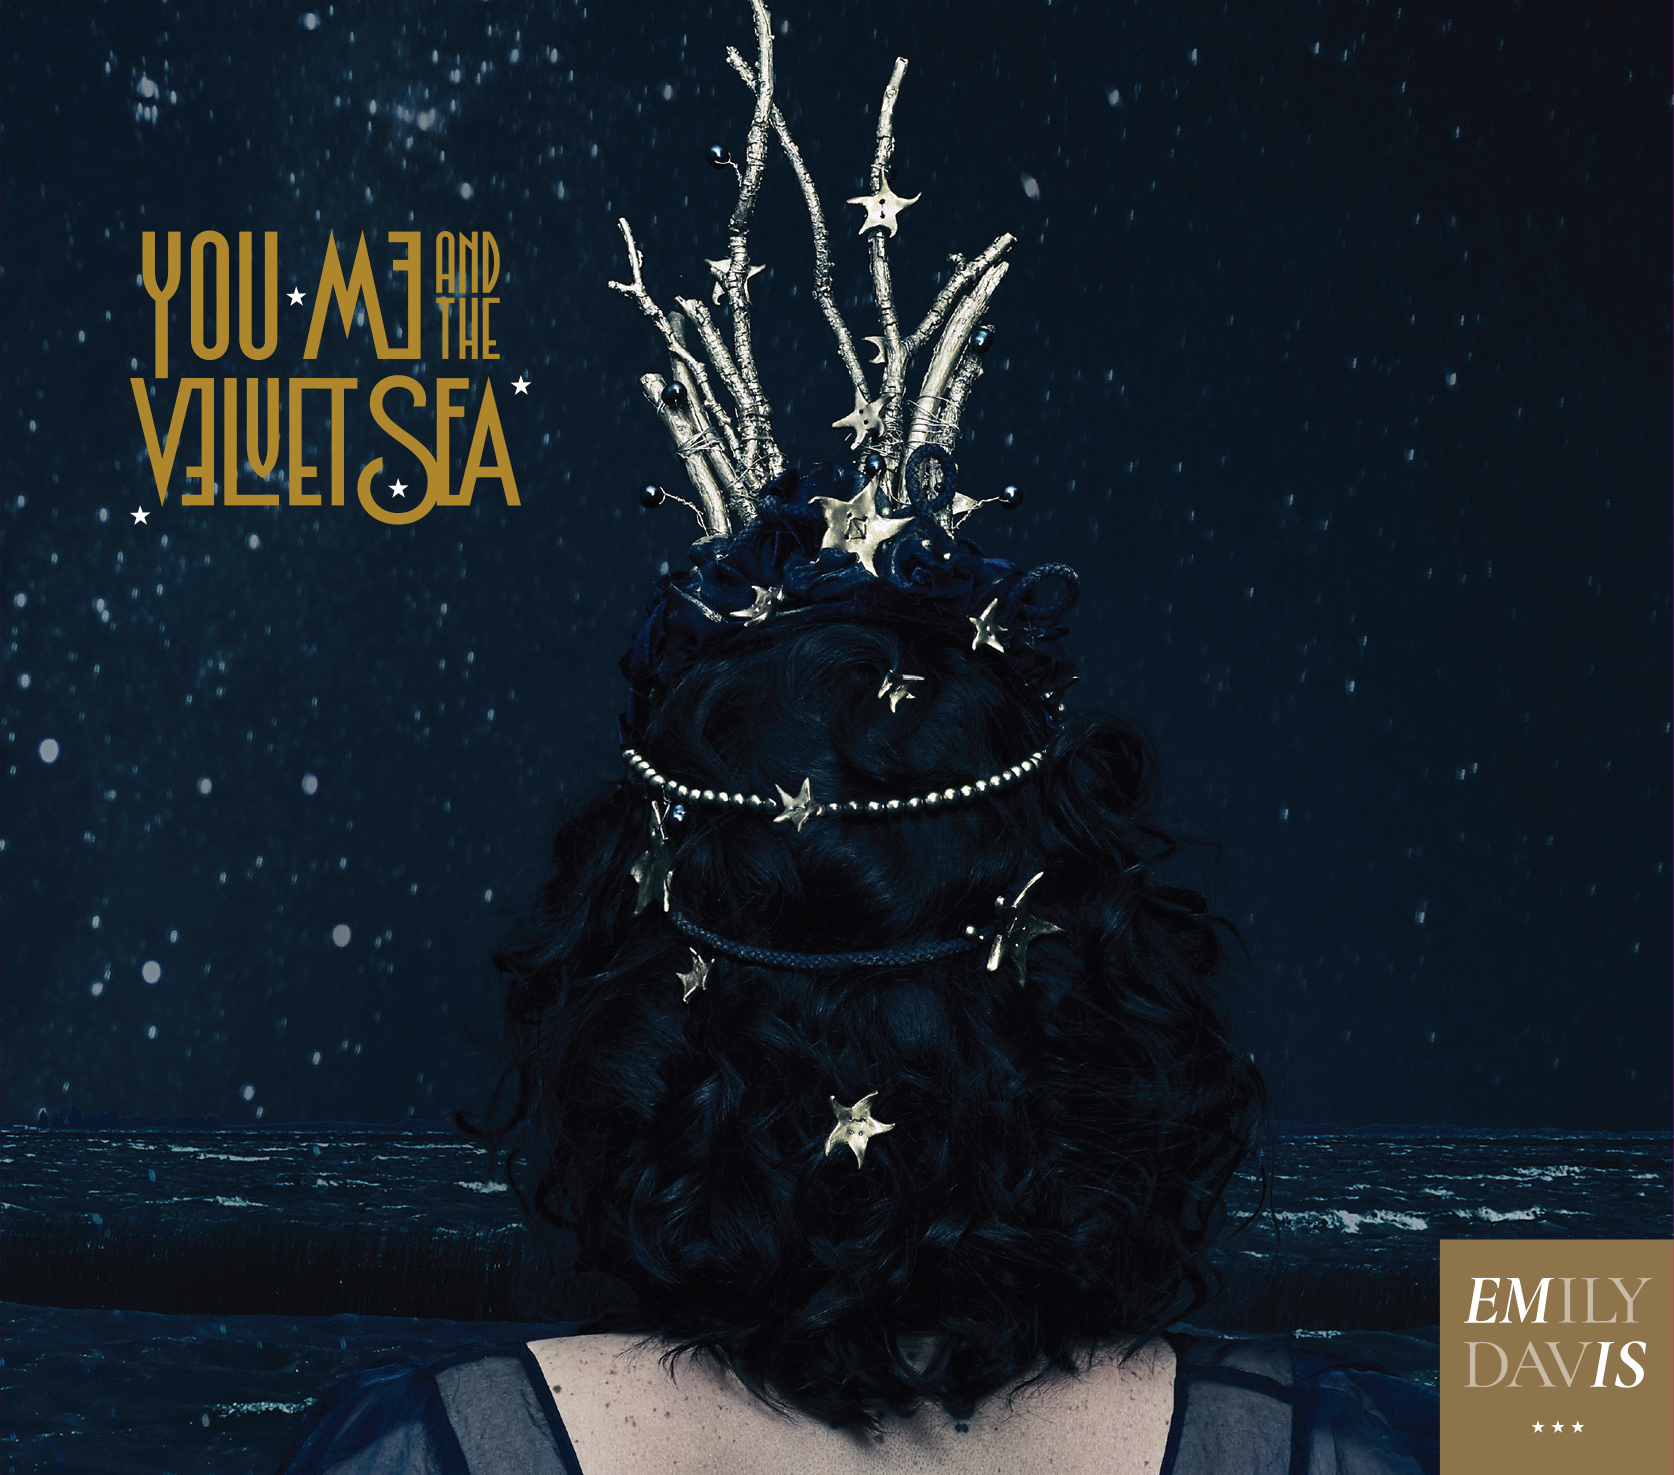 emilydavis youmeandthevelvetsea cd cover final web